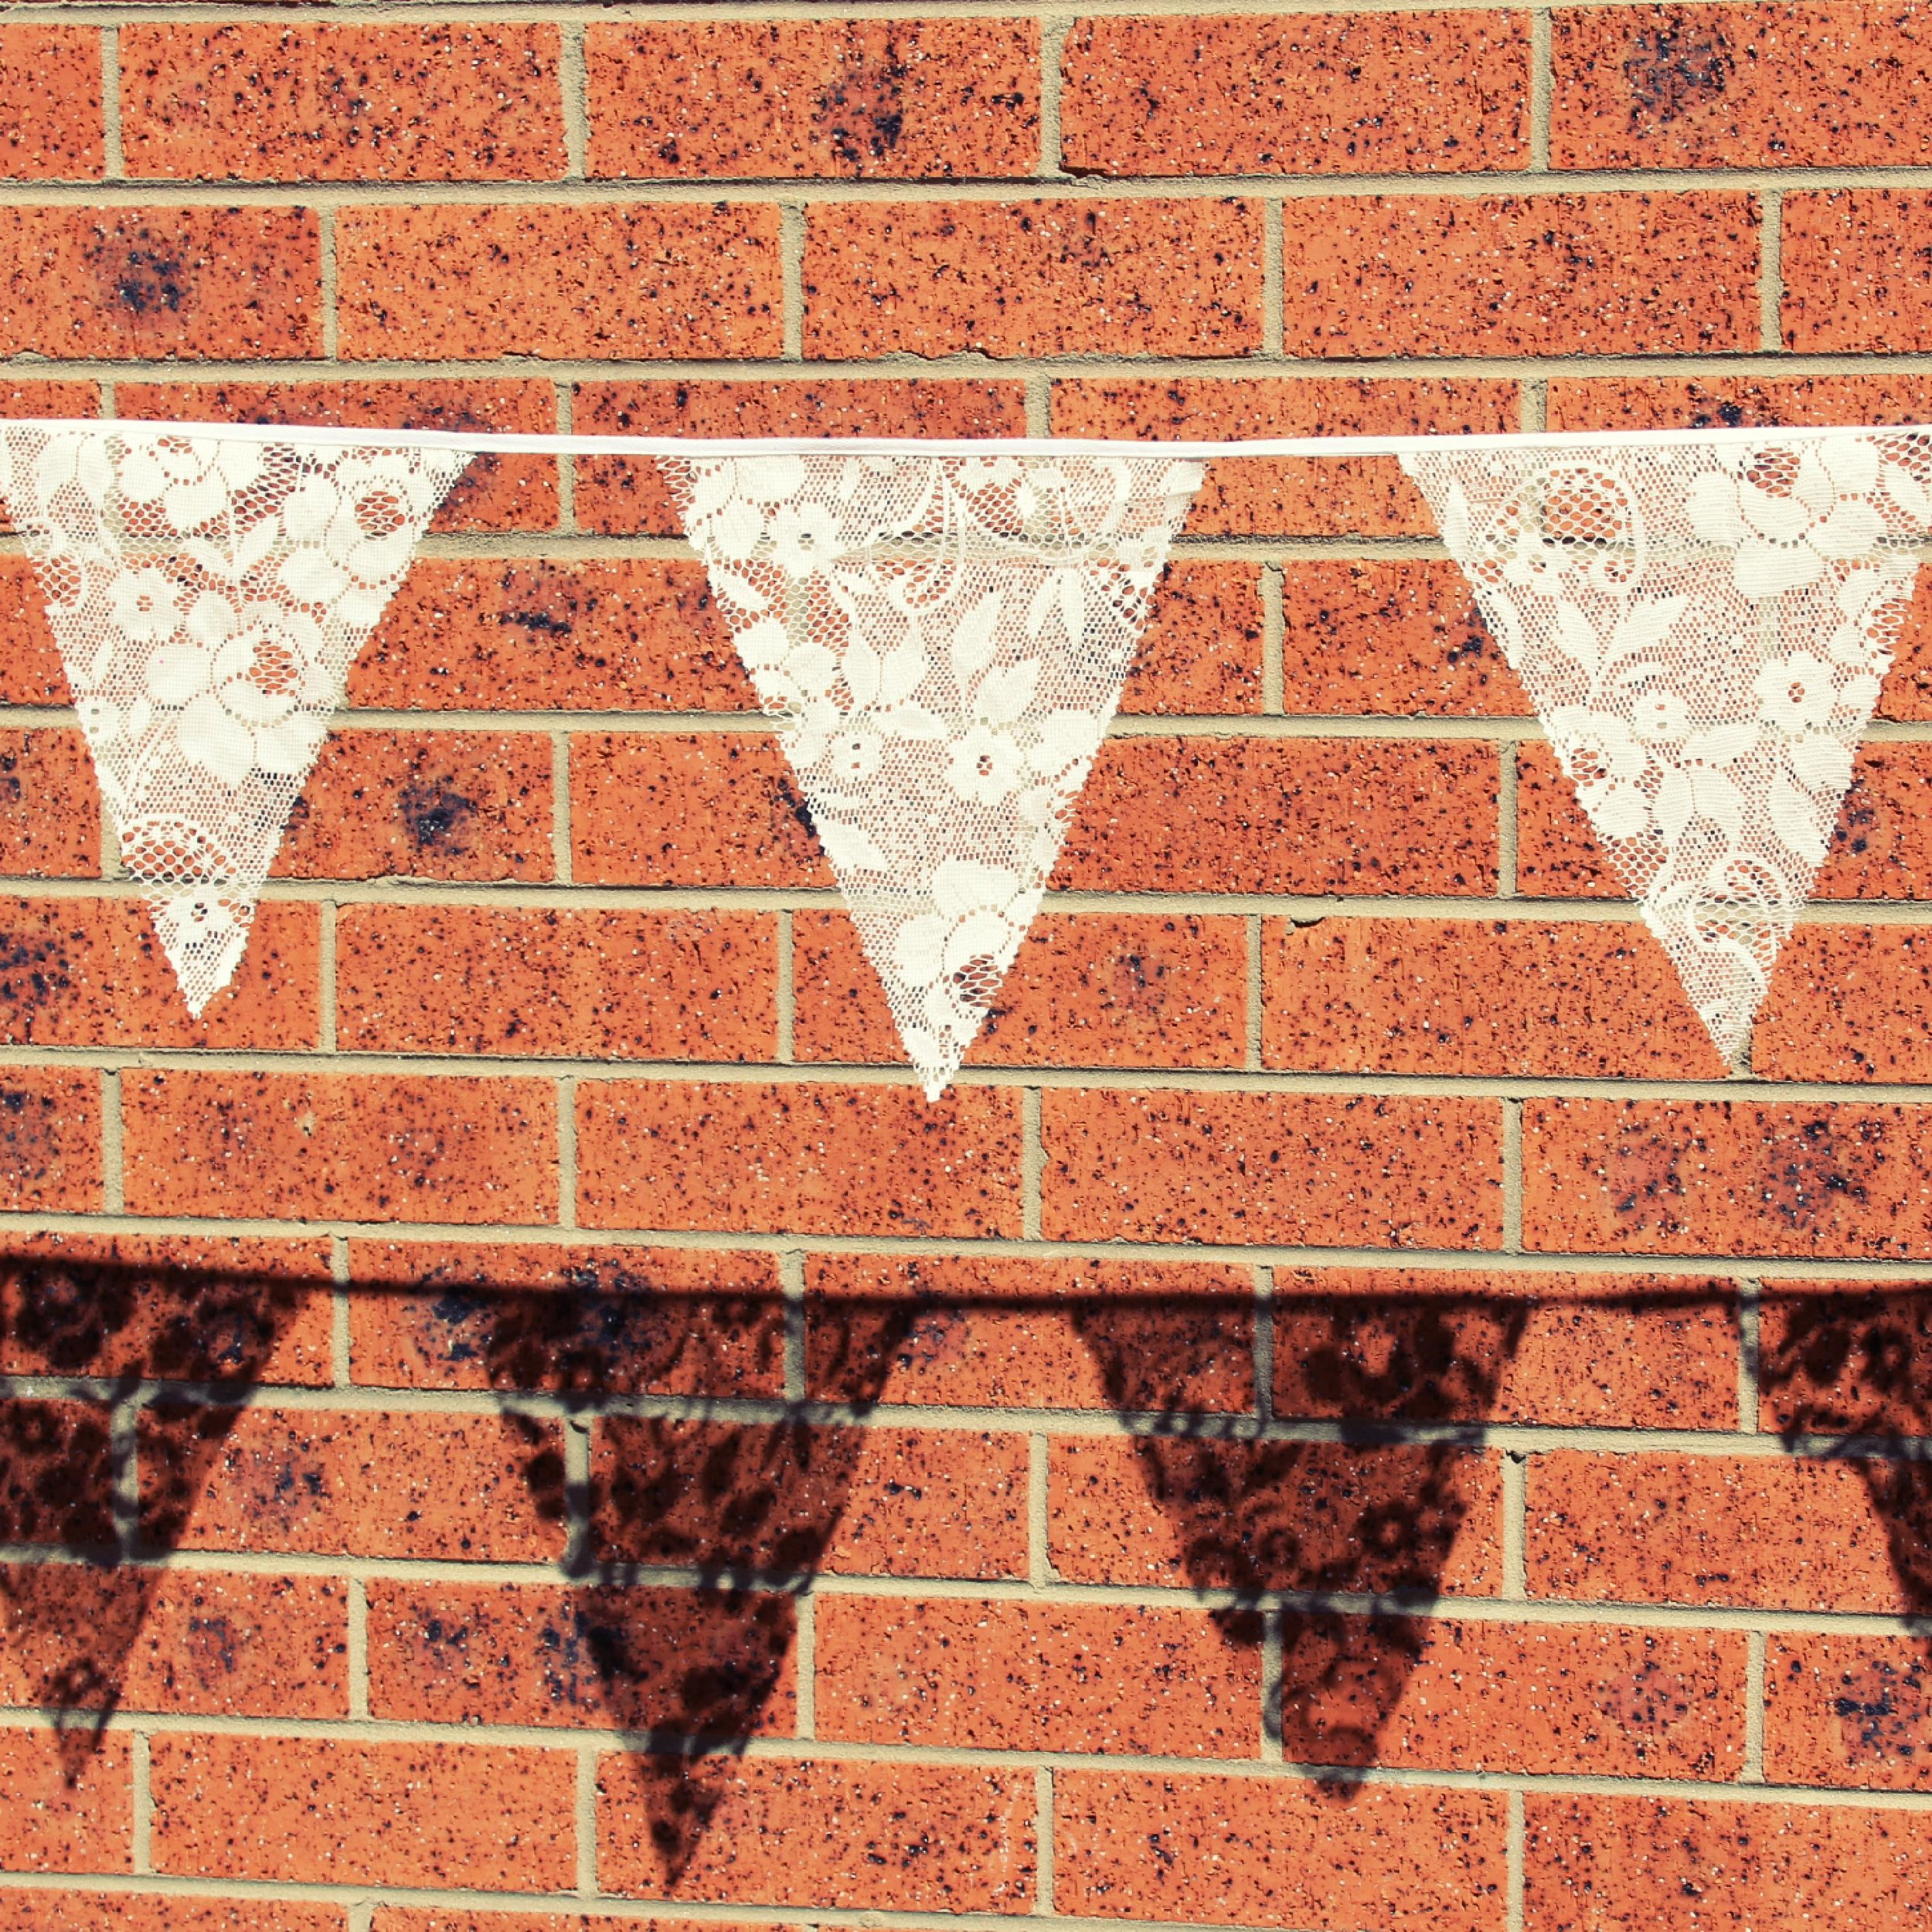 Off-white lace bunting - up to 100m available